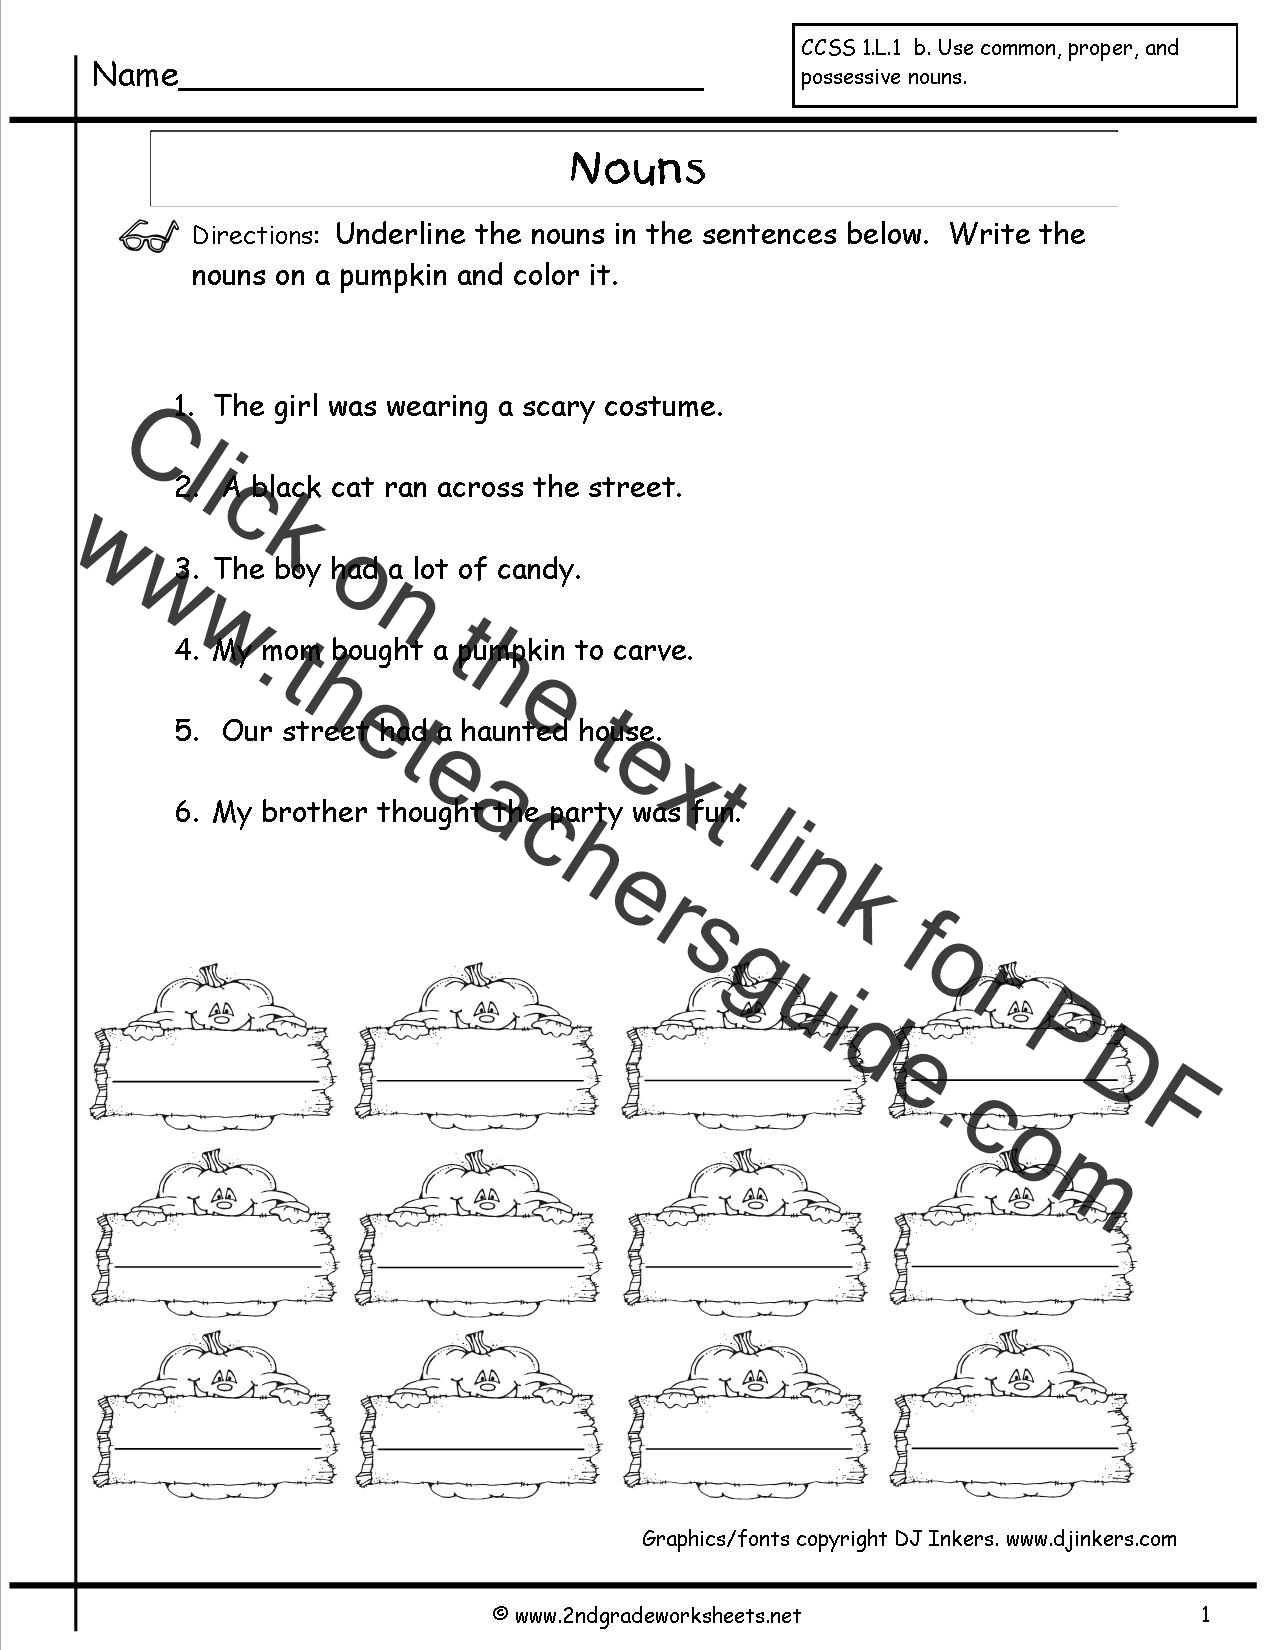 English Noun Worksheet For Class 1